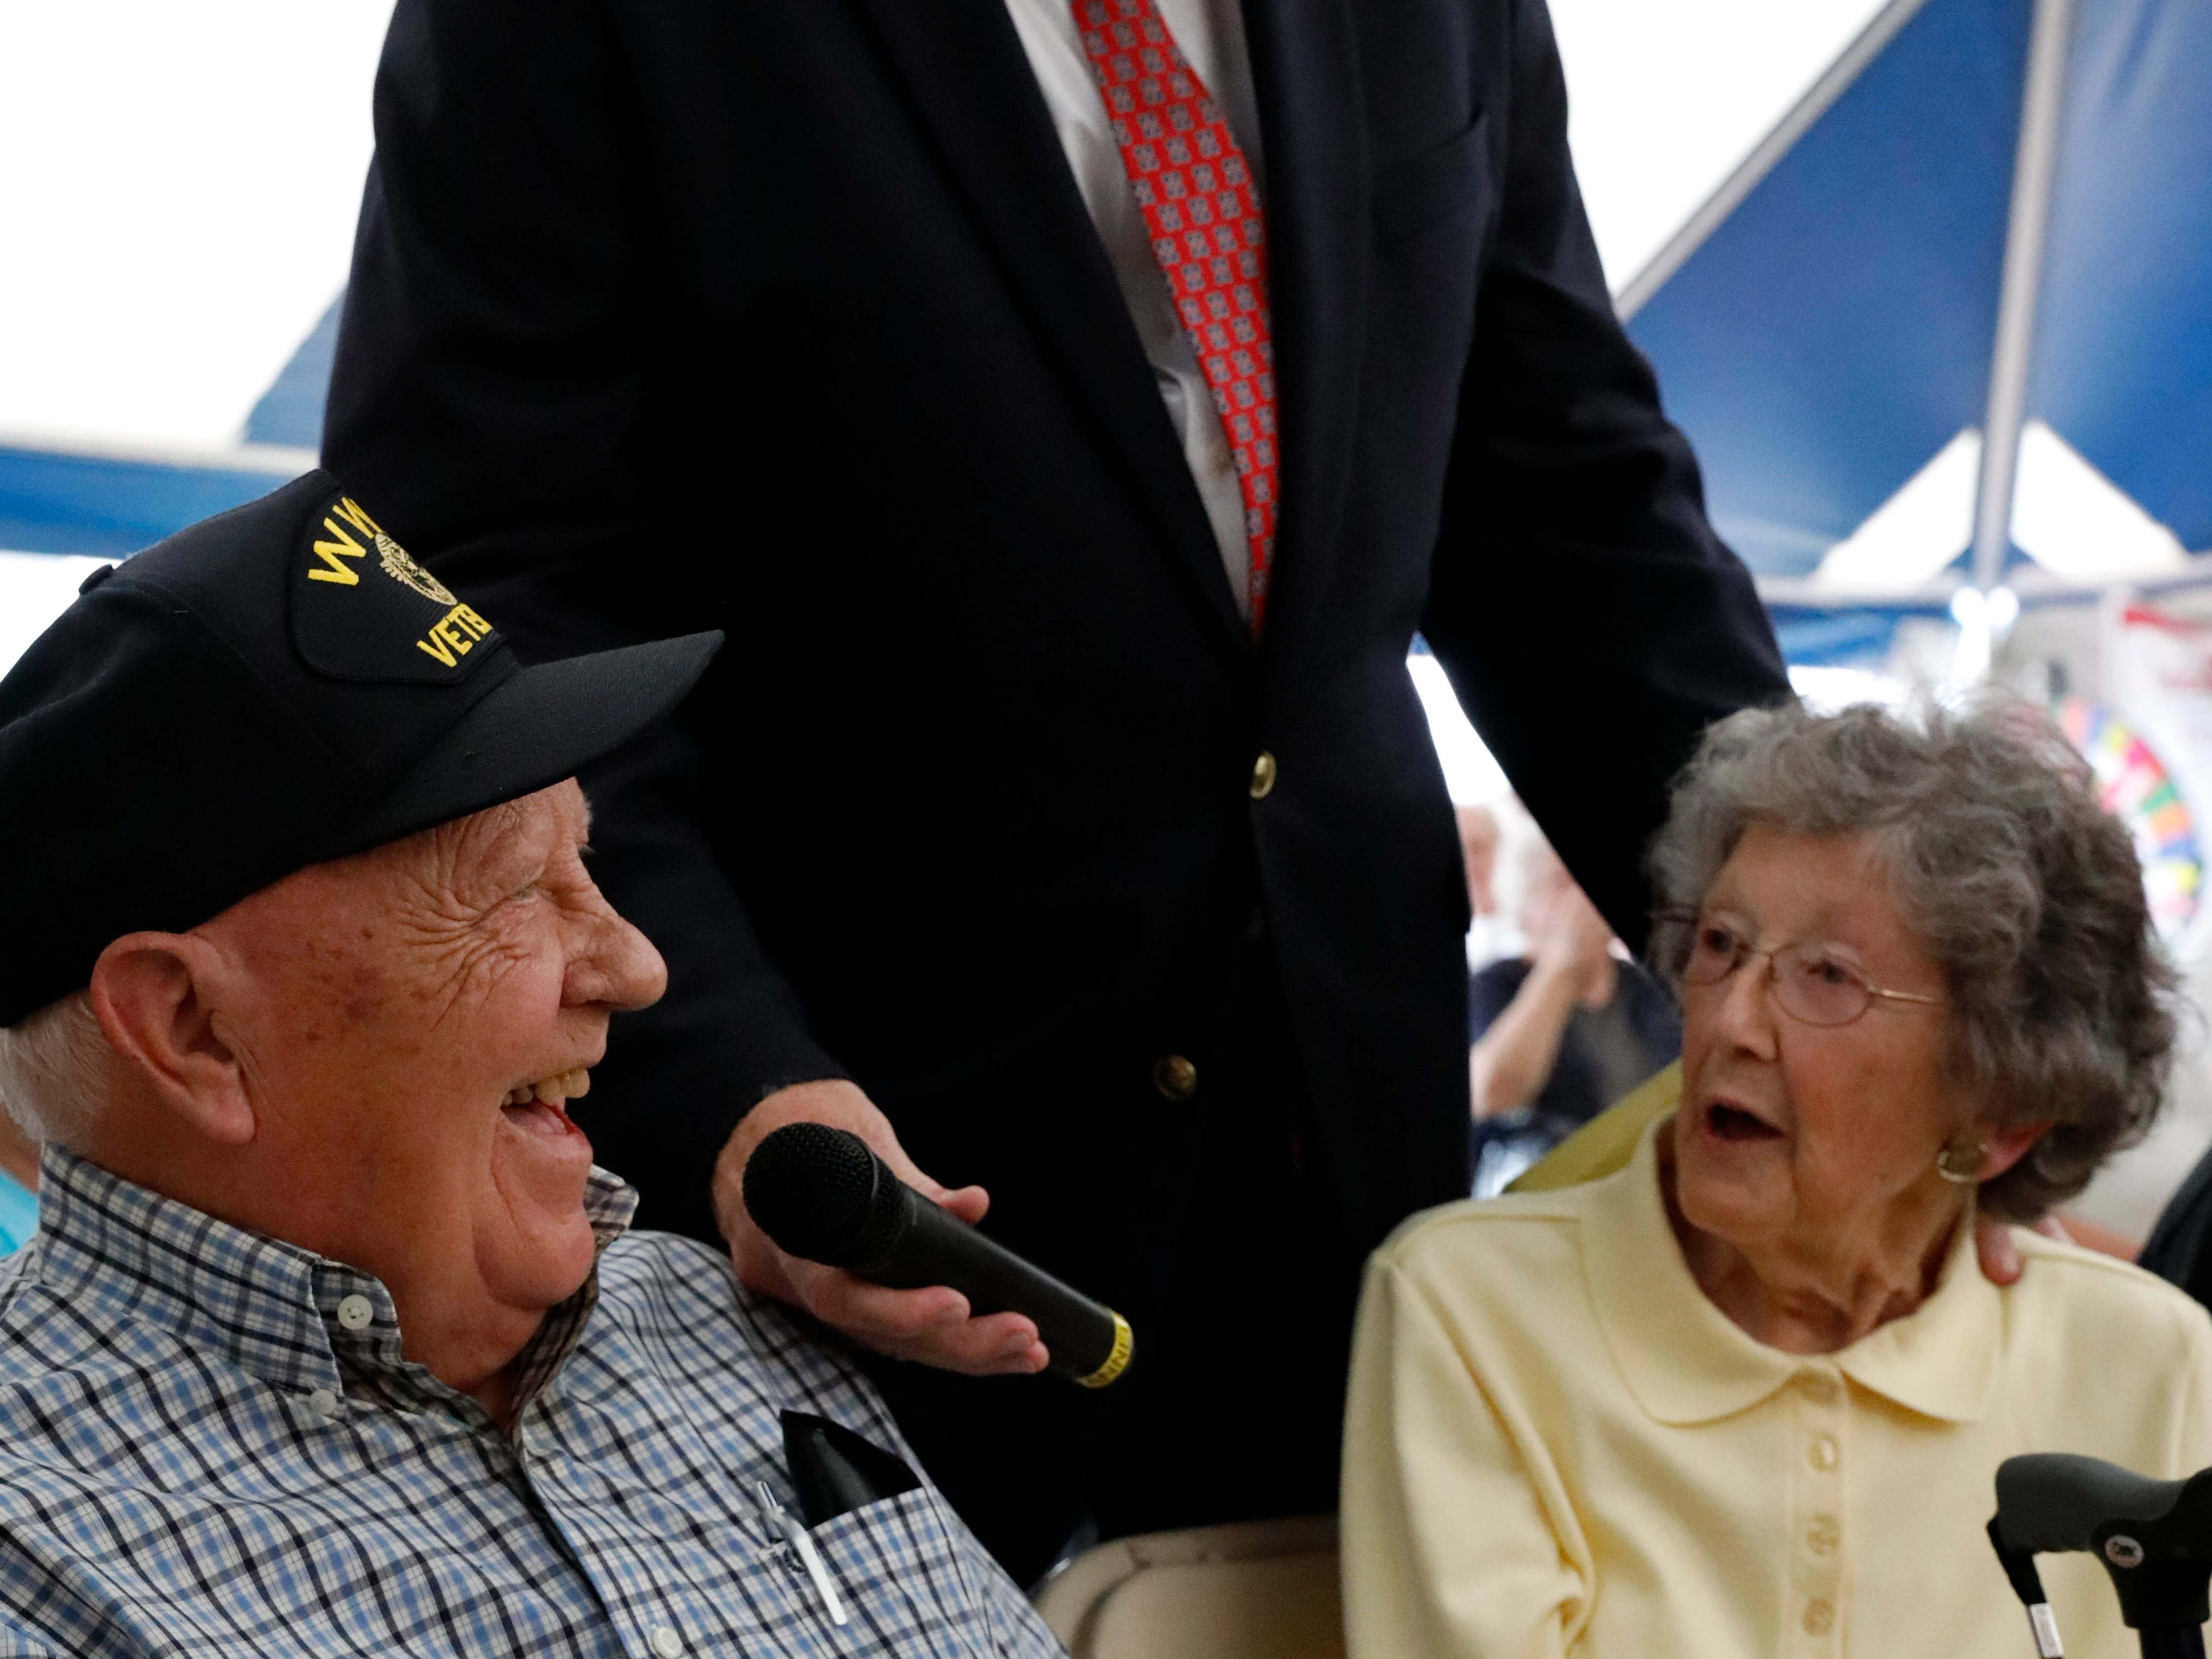 Paul Jassogne talks to Bob and Margaret Hayden, from Amanda, Wednesday afternoon, Oct. 10, 2018, at the Fairfield County Fair in Lancaster. The Haydens were at the live radio broadcast for couples who have married 50 years or longer. Married for 73 years the length of the Hayden's marriage beat out the 46 other couples for the longest marriage.